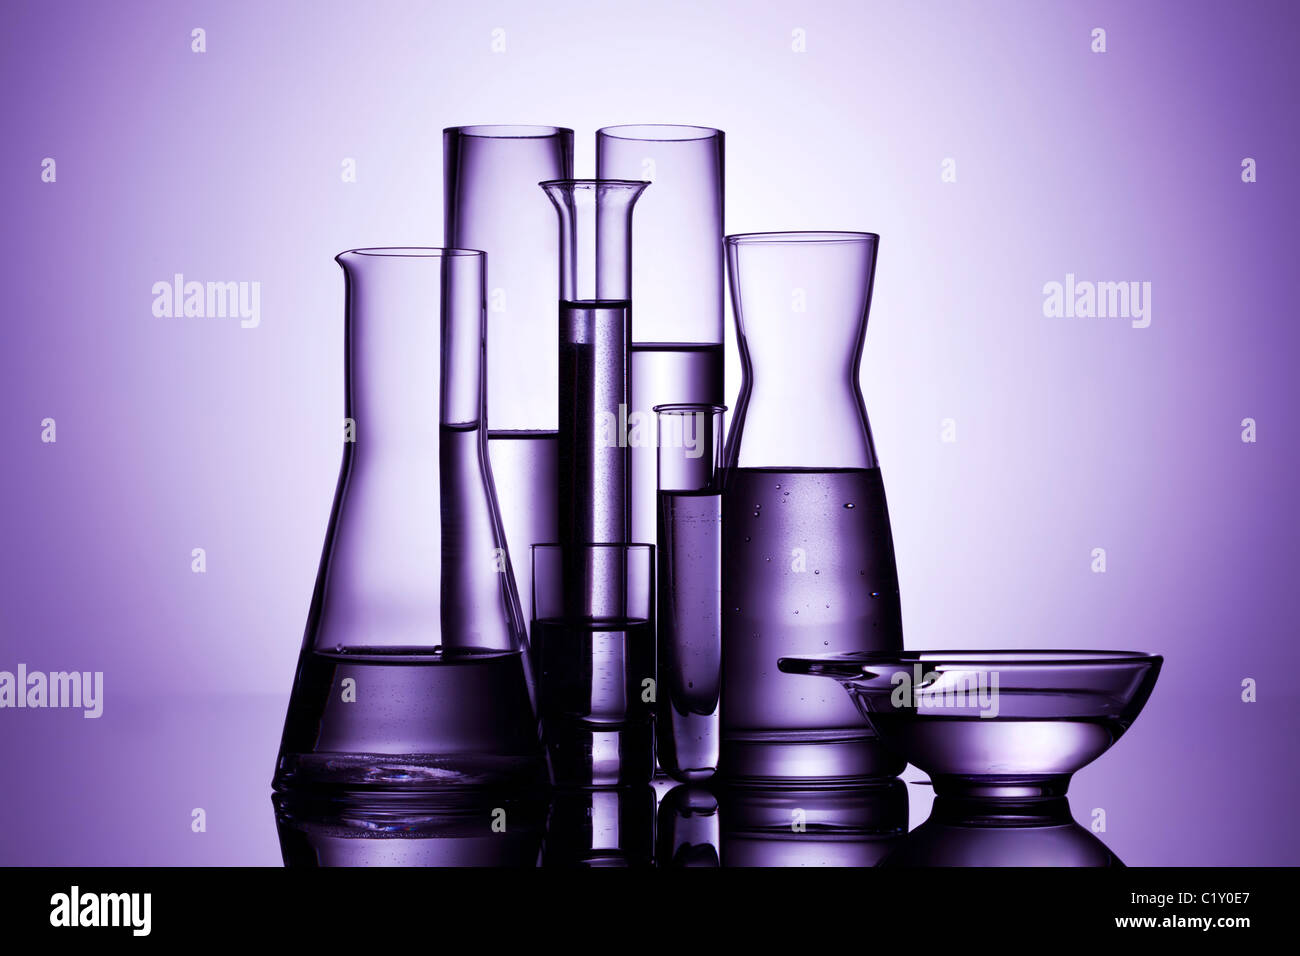 laboratory glassware, backlit, purple light - Stock Image